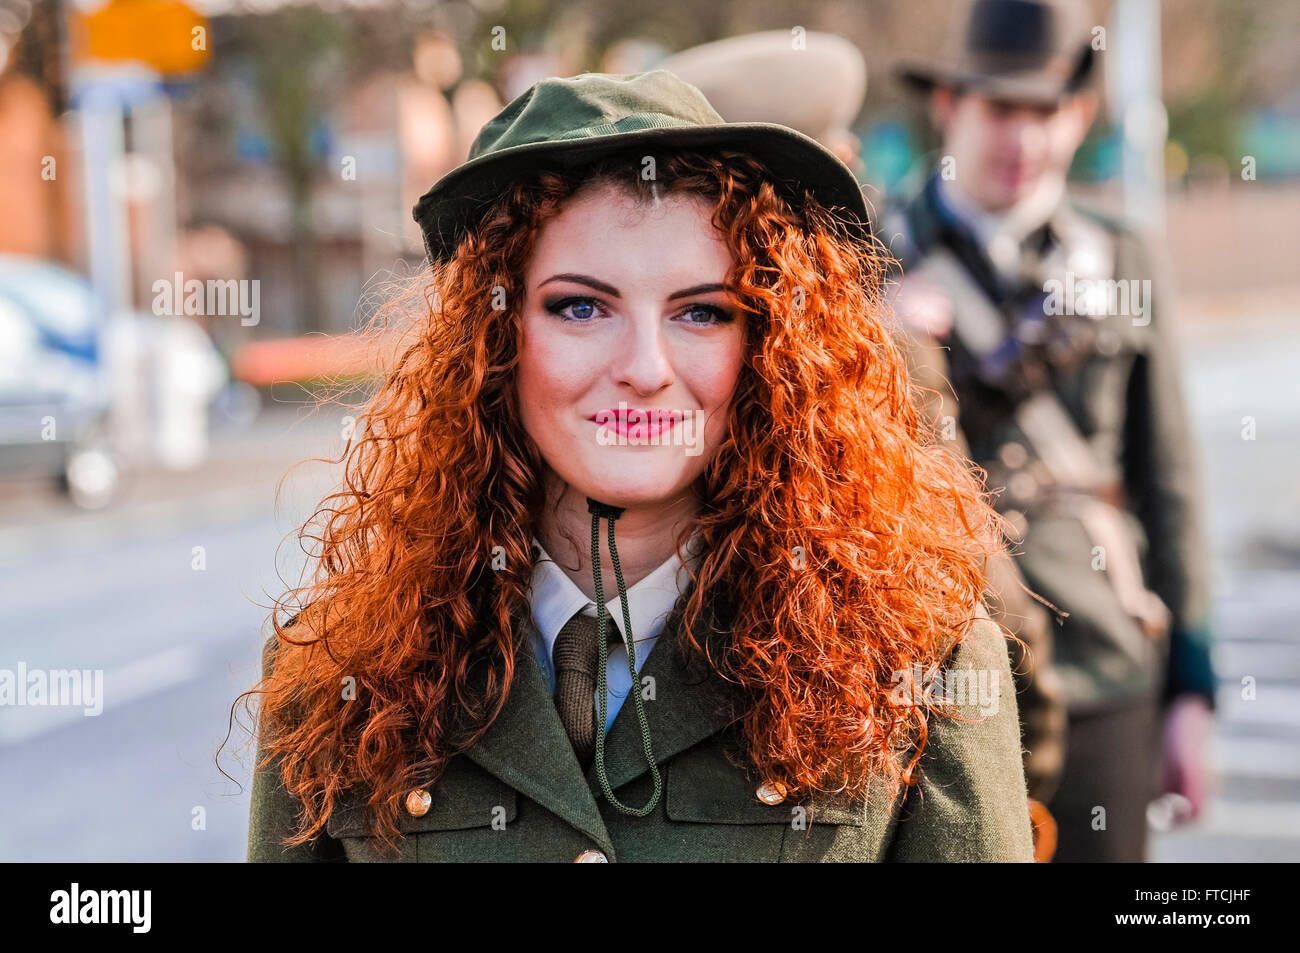 Belfast, Northern Ireland. 27 Mar 2016 - Connlaith Pickering wearing a reproduction military uniform from the Irish Stock Photo